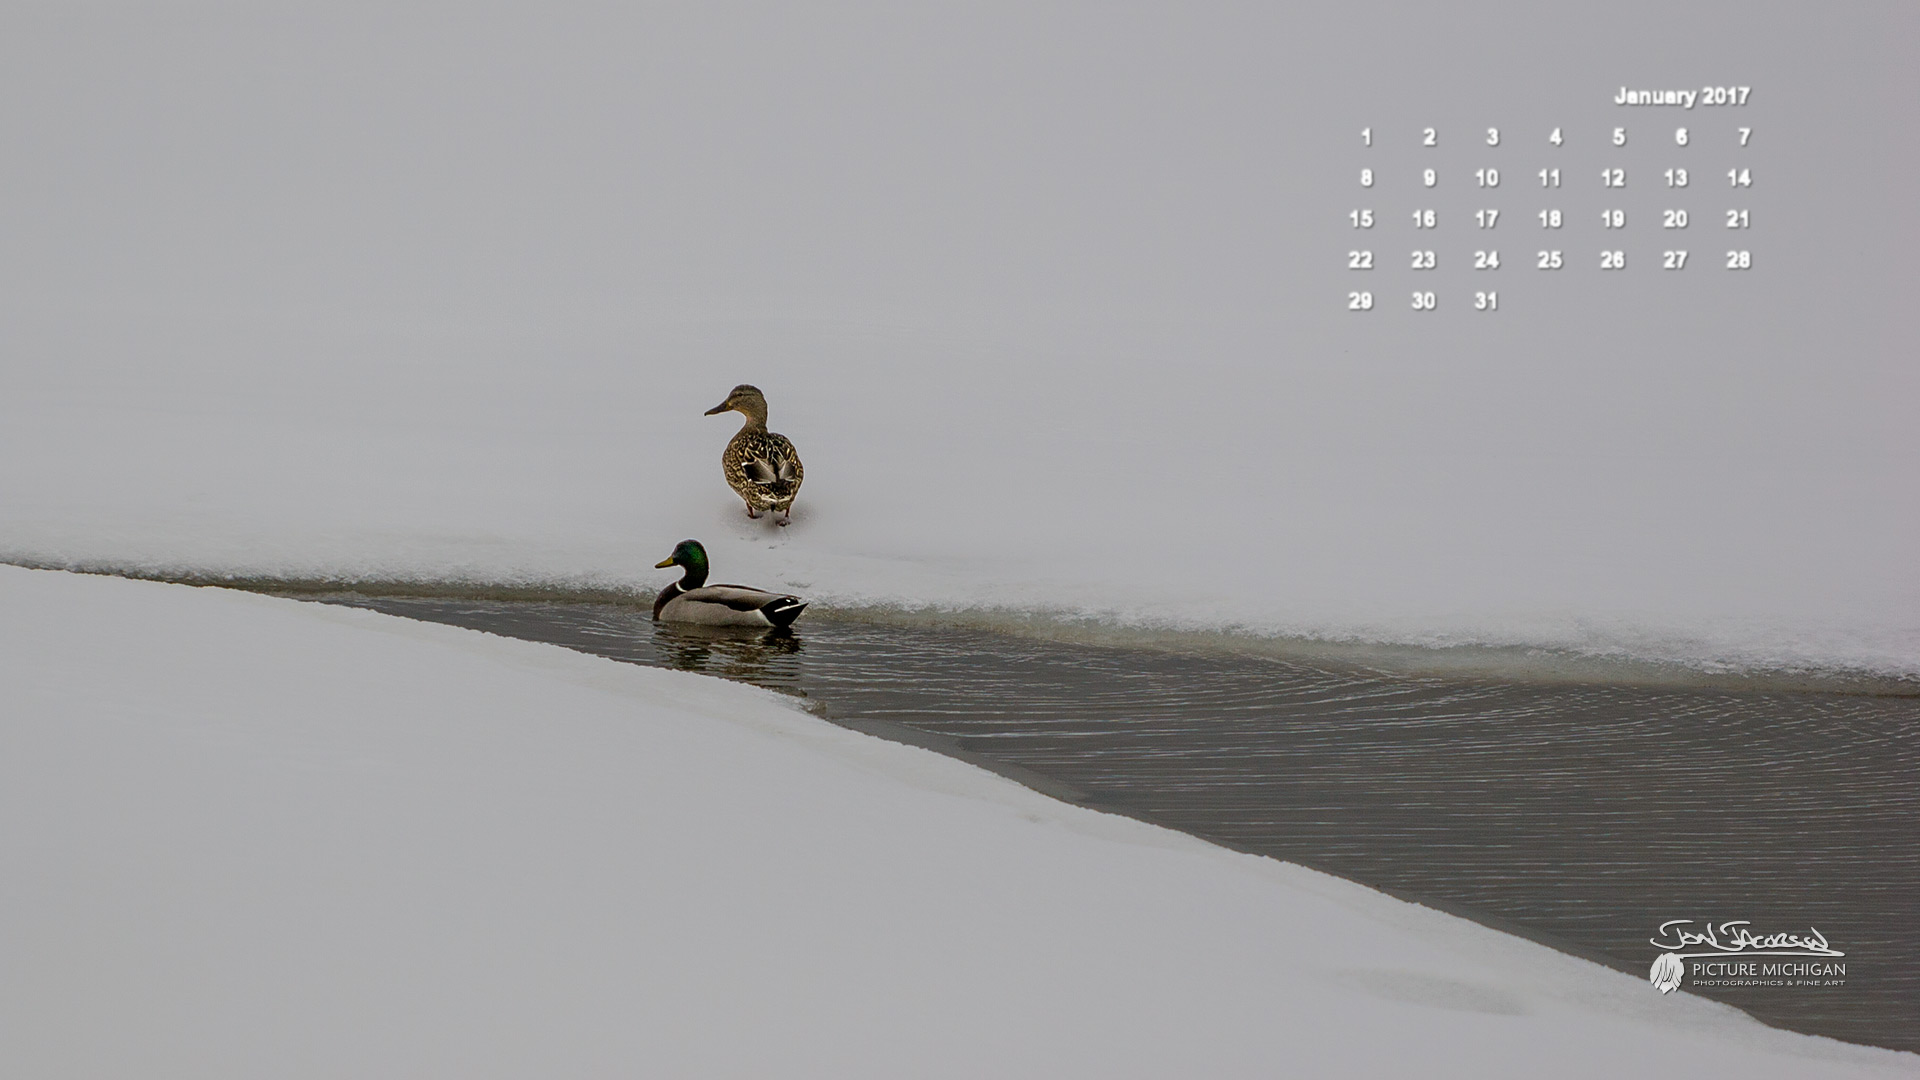 January 2017 Calendar Desktop Wallpaper